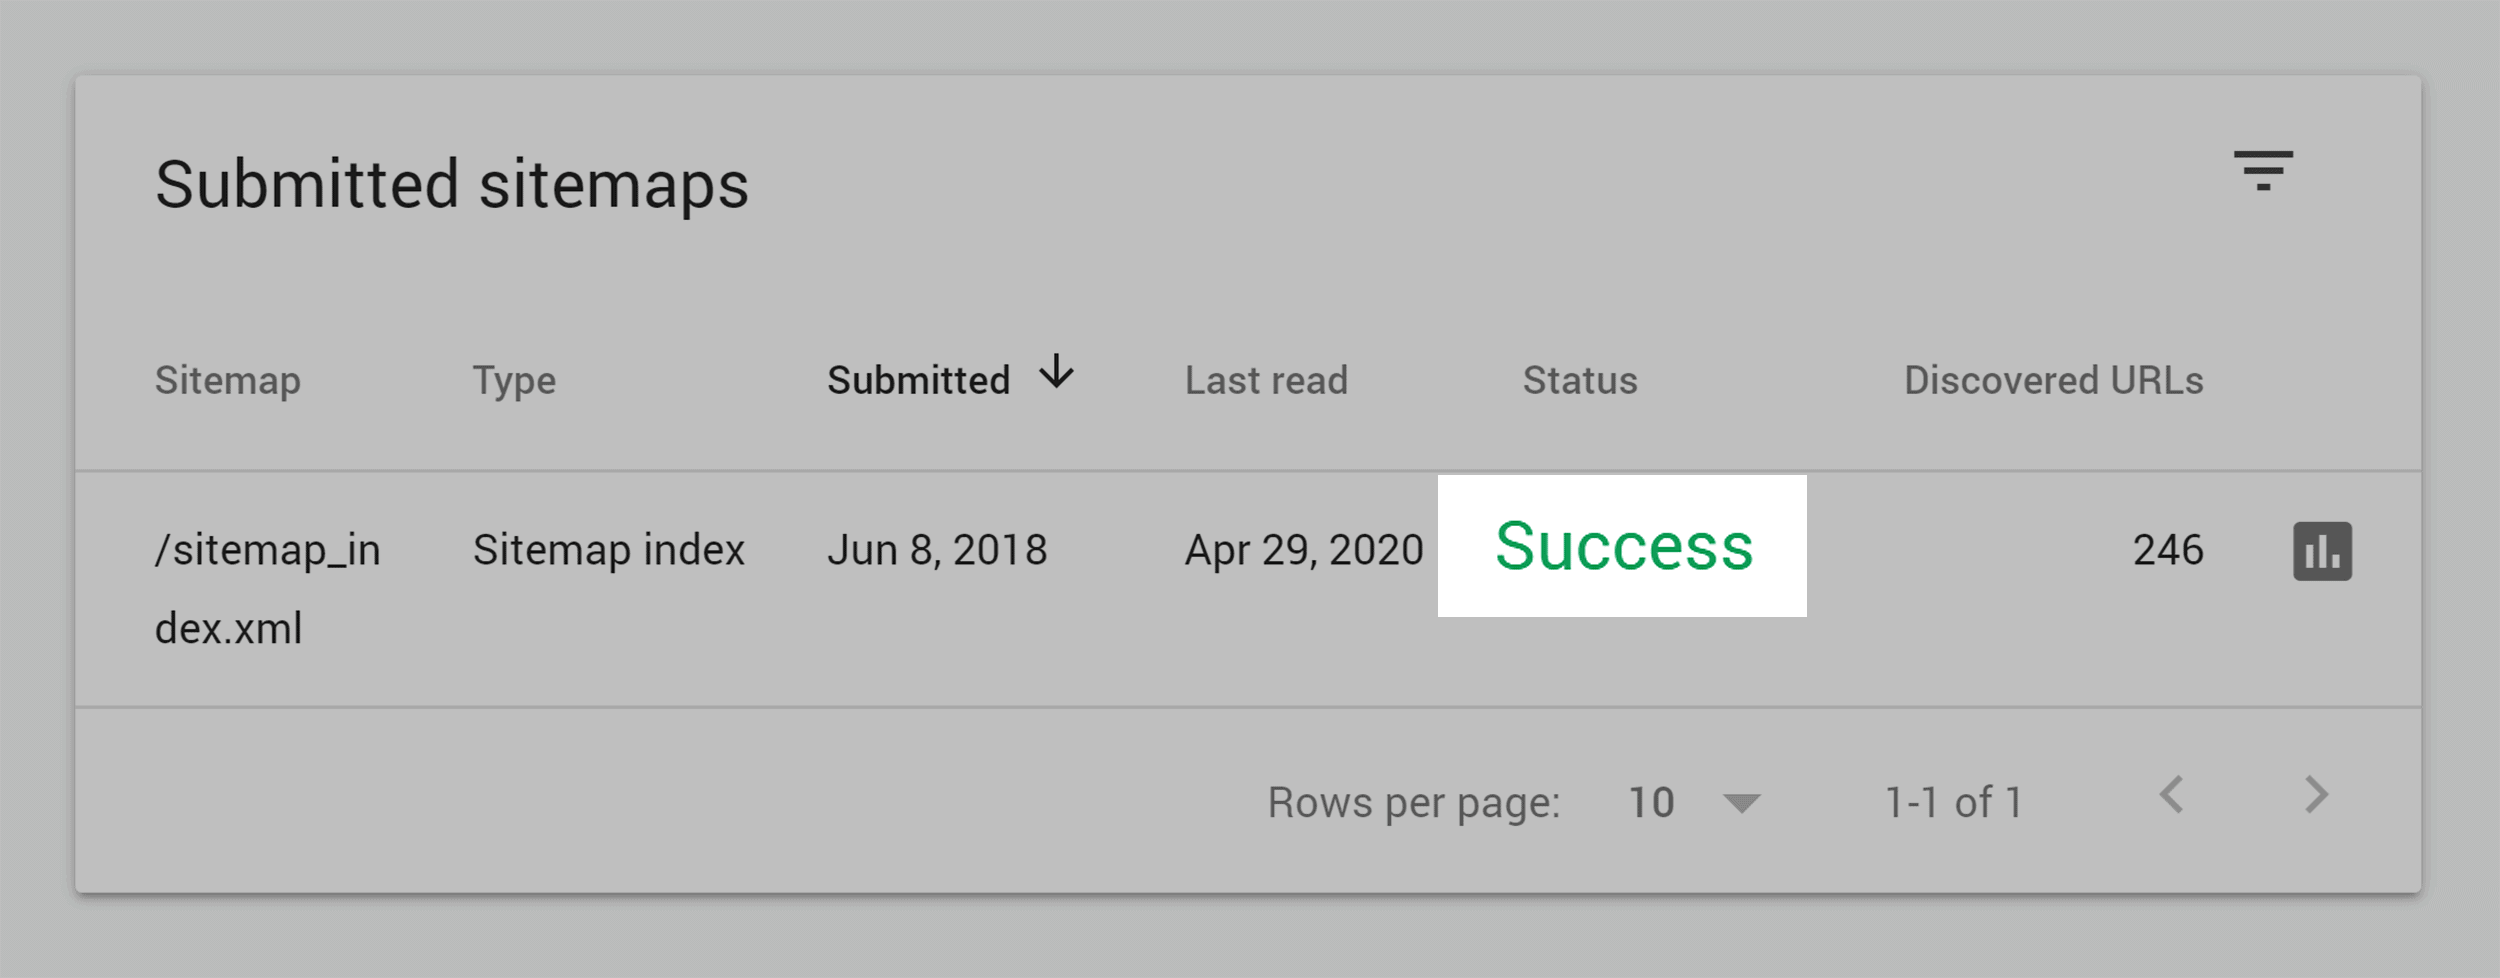 Google Search Console – Sitemaps report